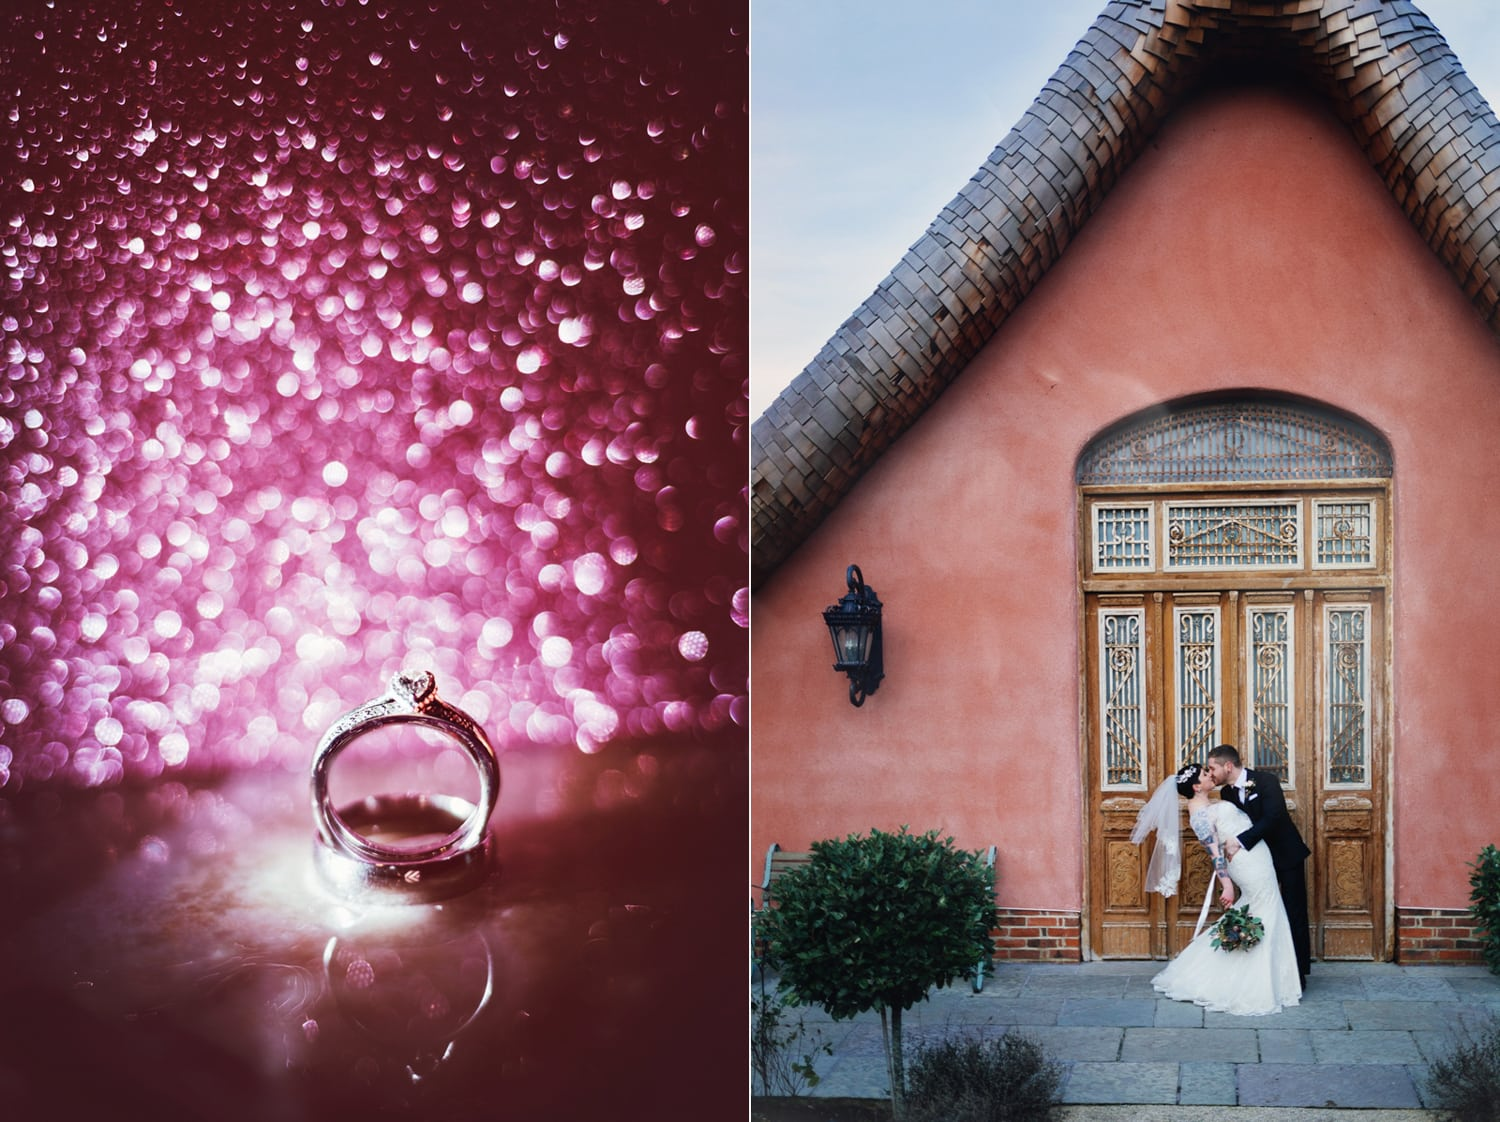 Le Petit Chateau, wedding ring and couplekissing